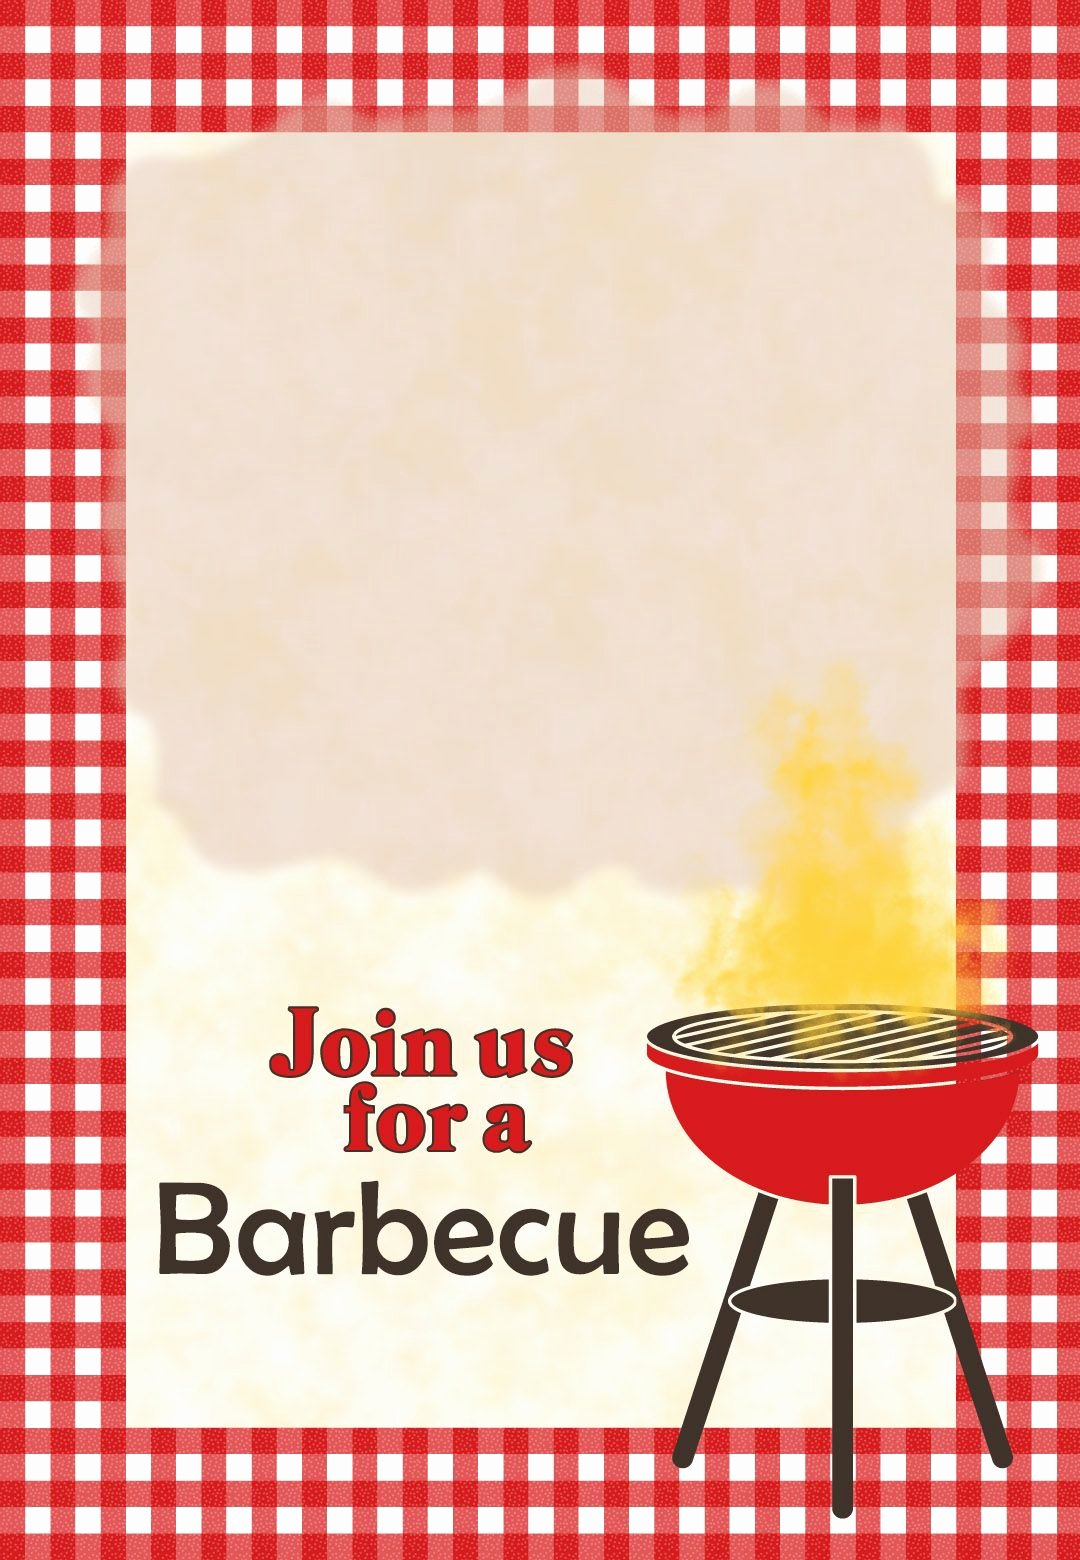 Bbq Invitation Template Word Beautiful A Barbecue Free Printable Party Invitation Template Greetings island